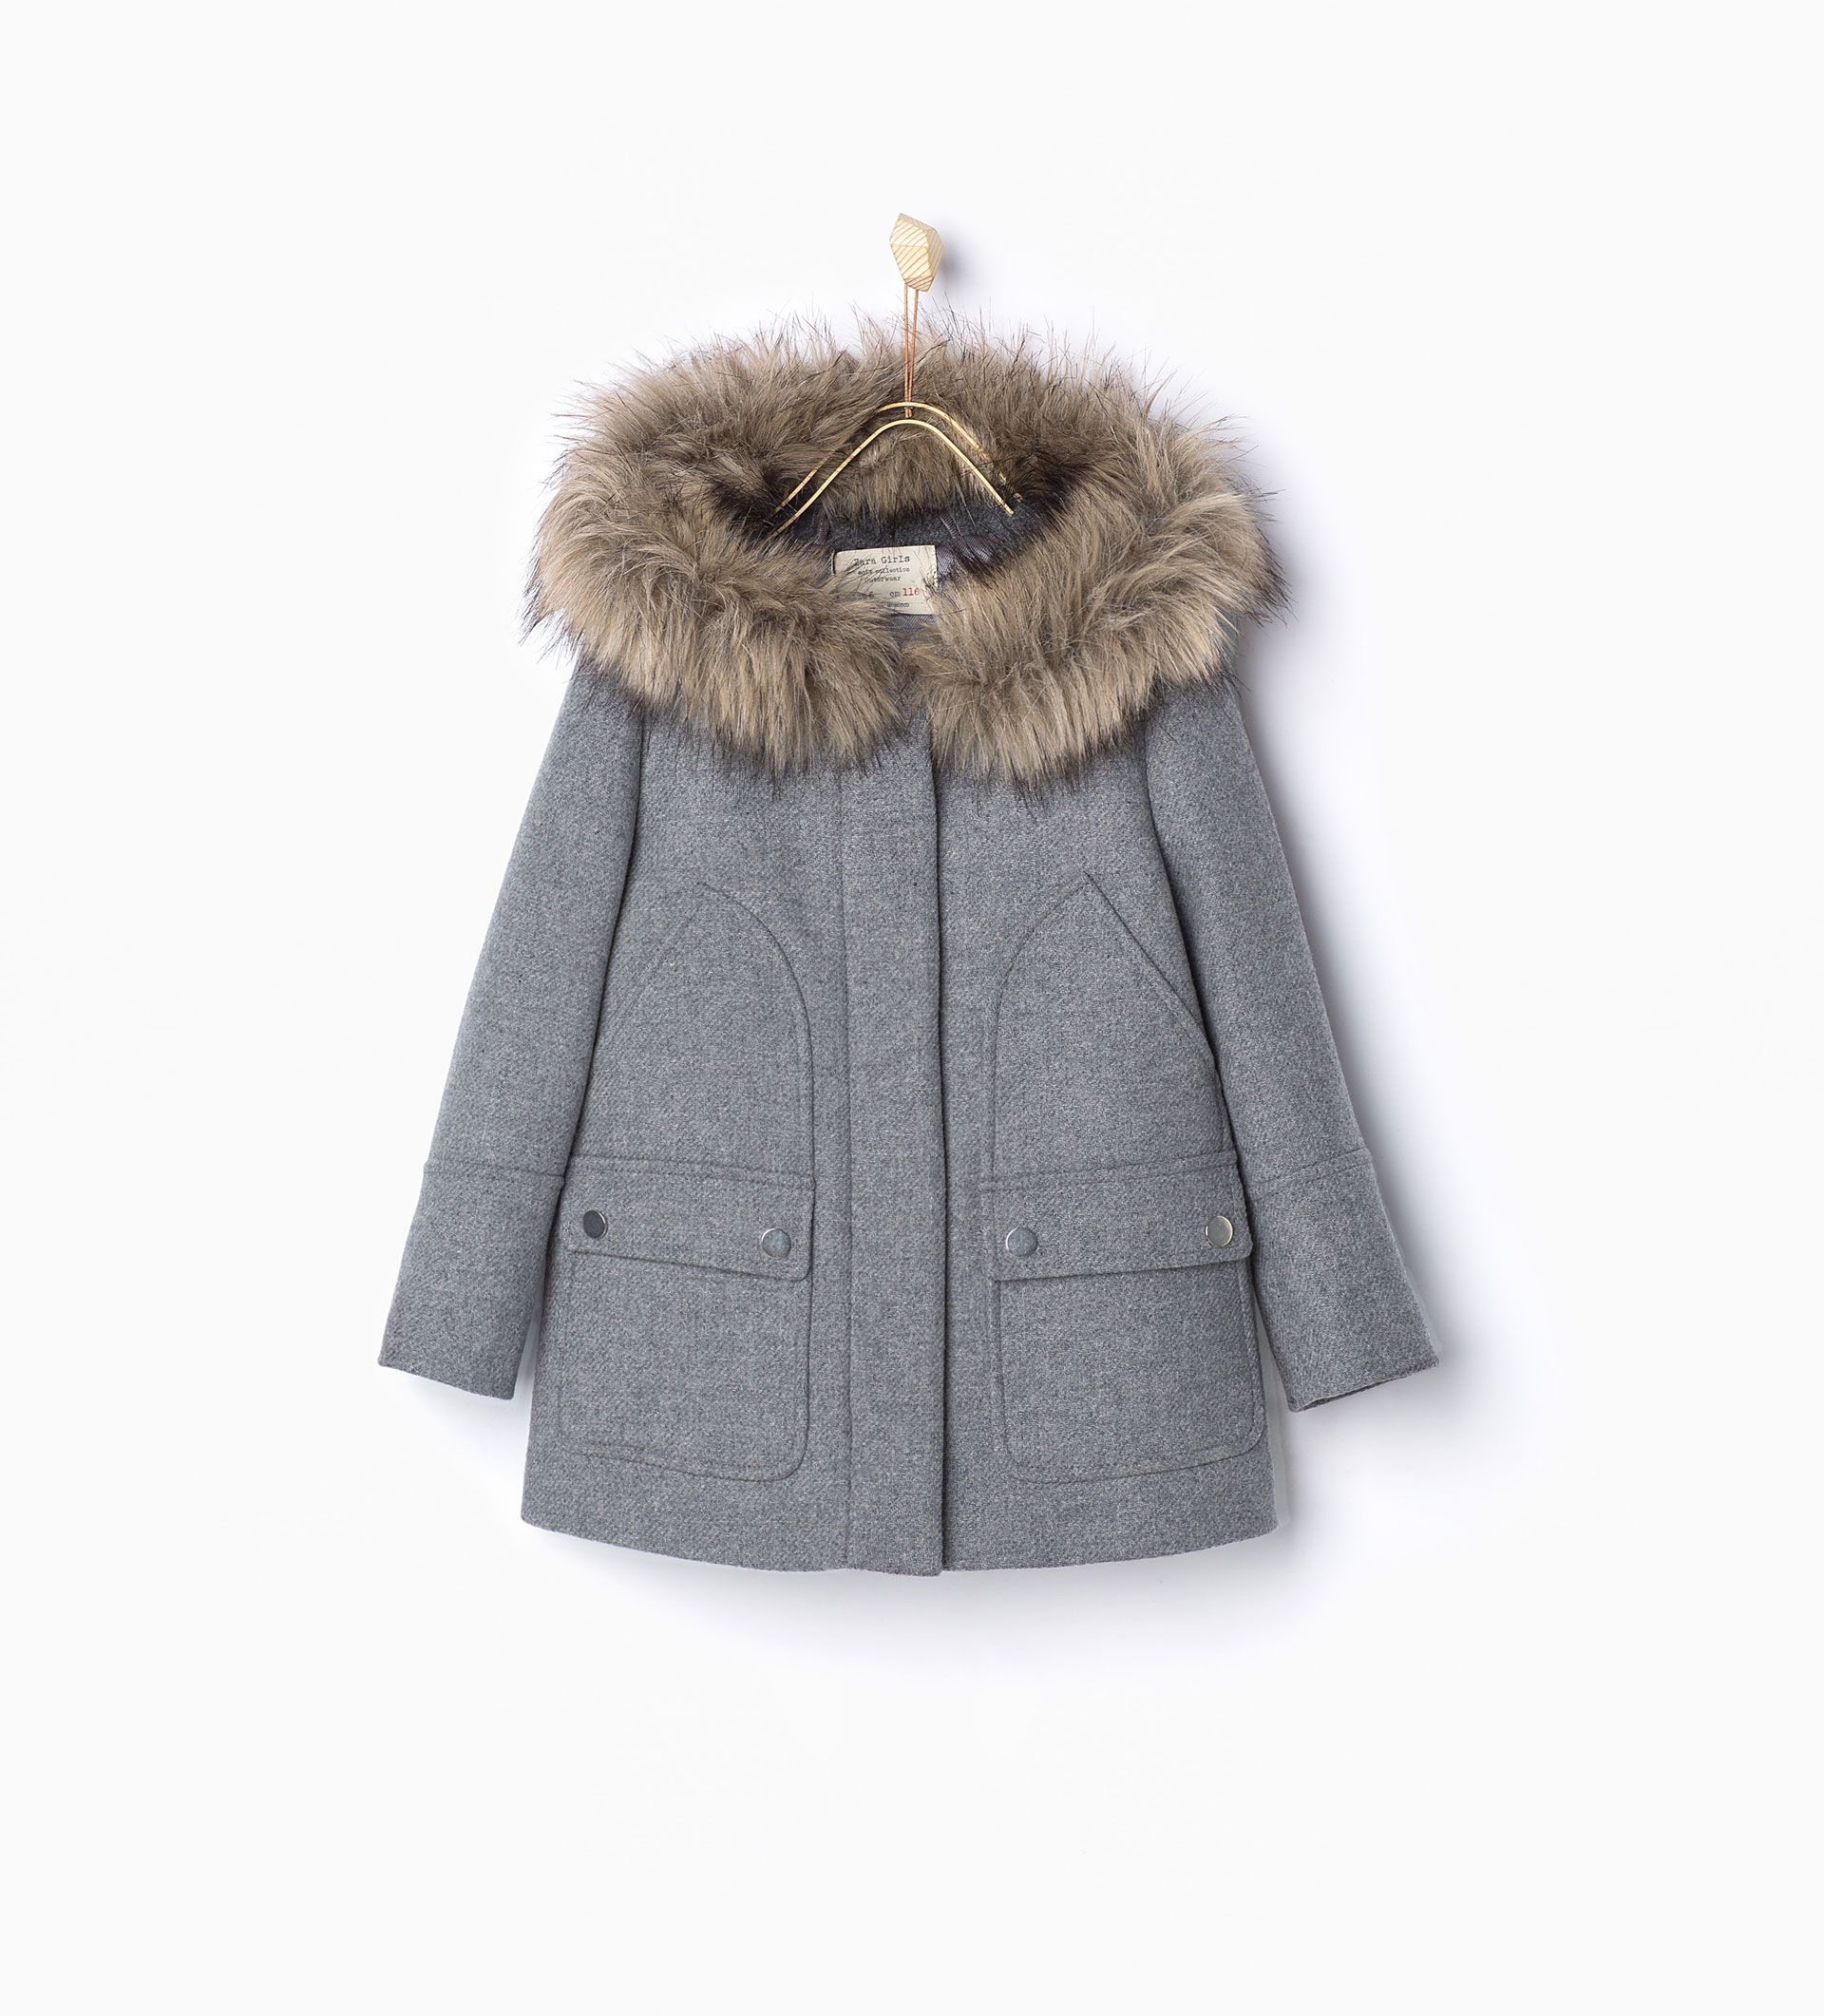 Faux Fur Wool Parka Must Haves Girl 4 14 Years